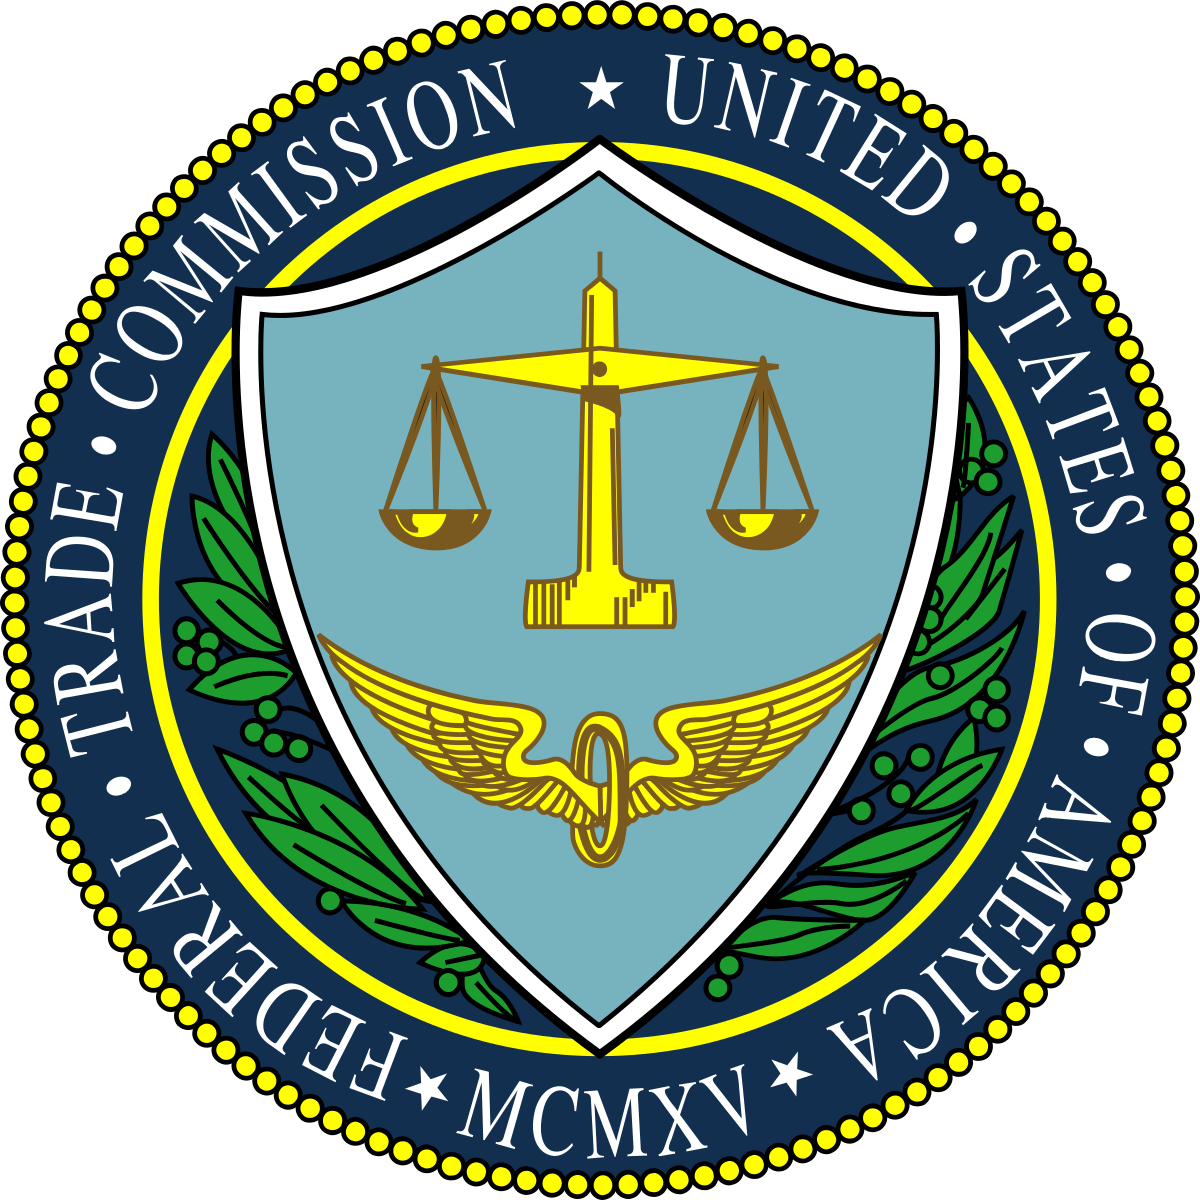 Federal Trade Commission United States of America